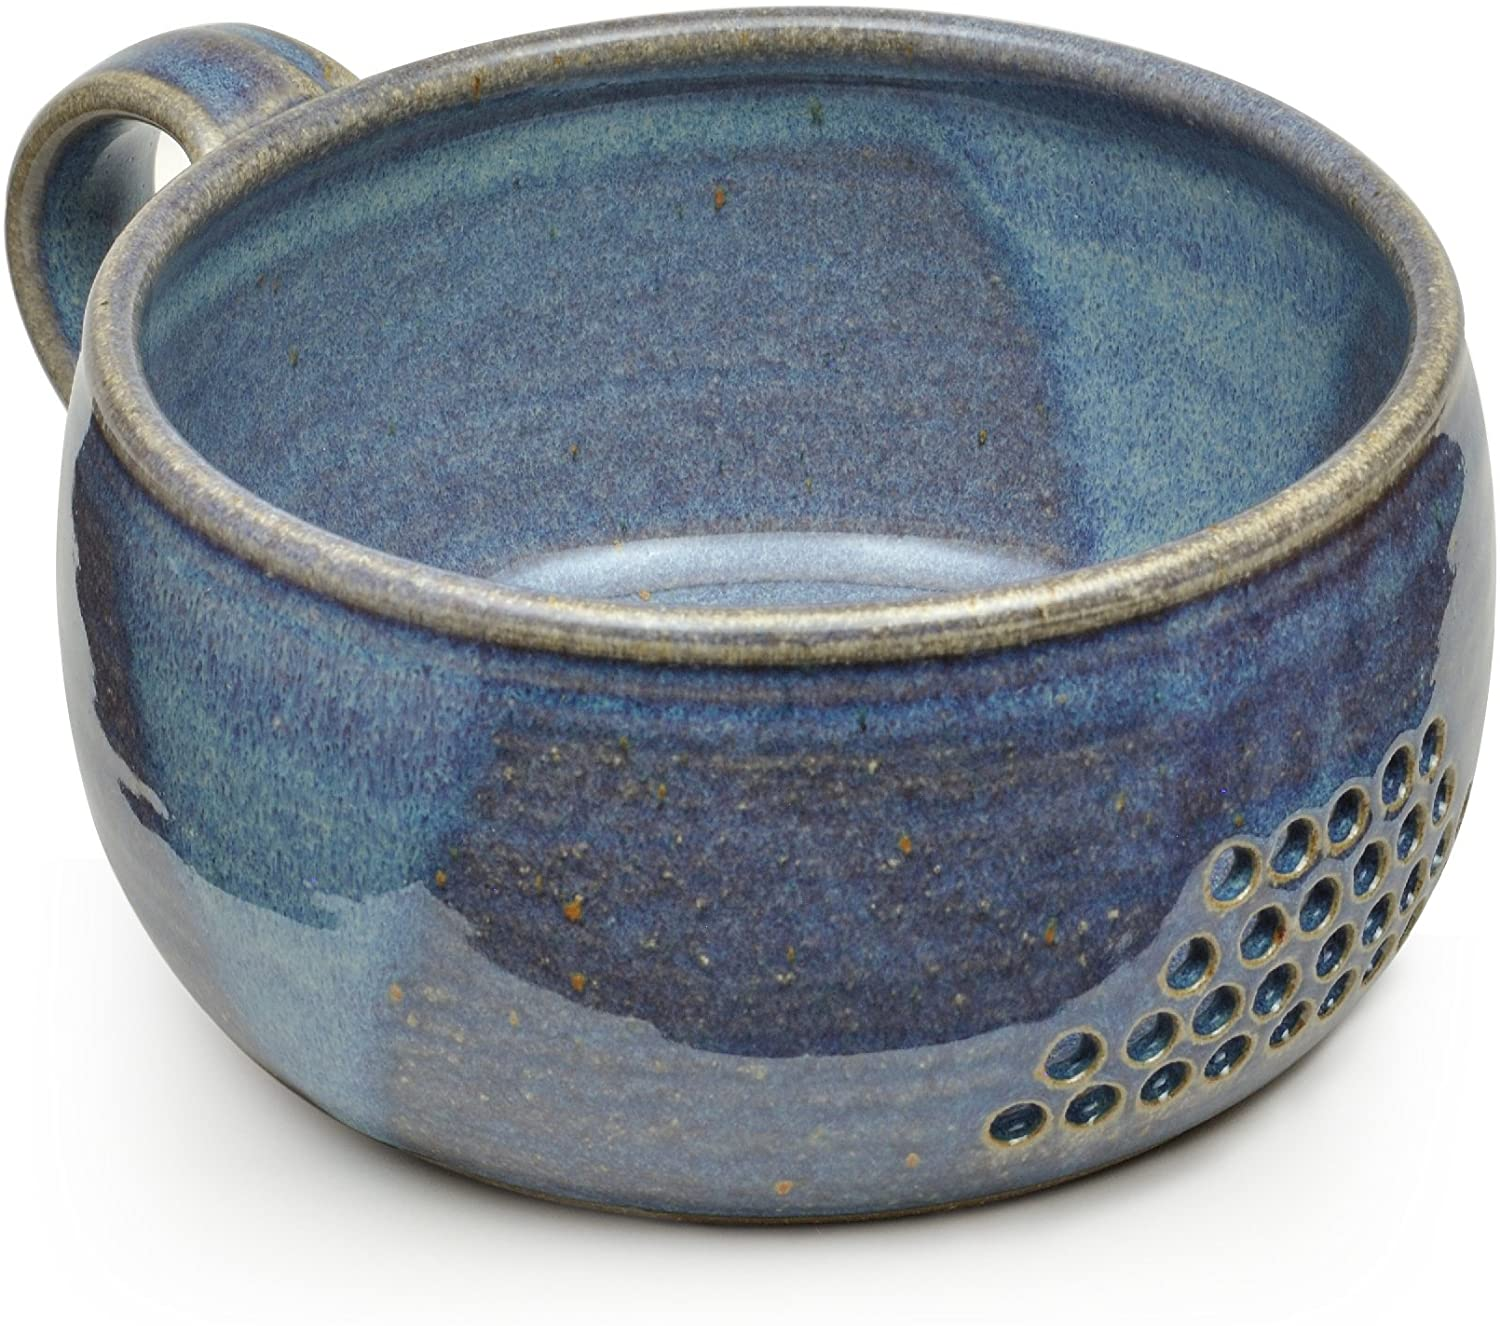 gifts-for-cooks-bowl